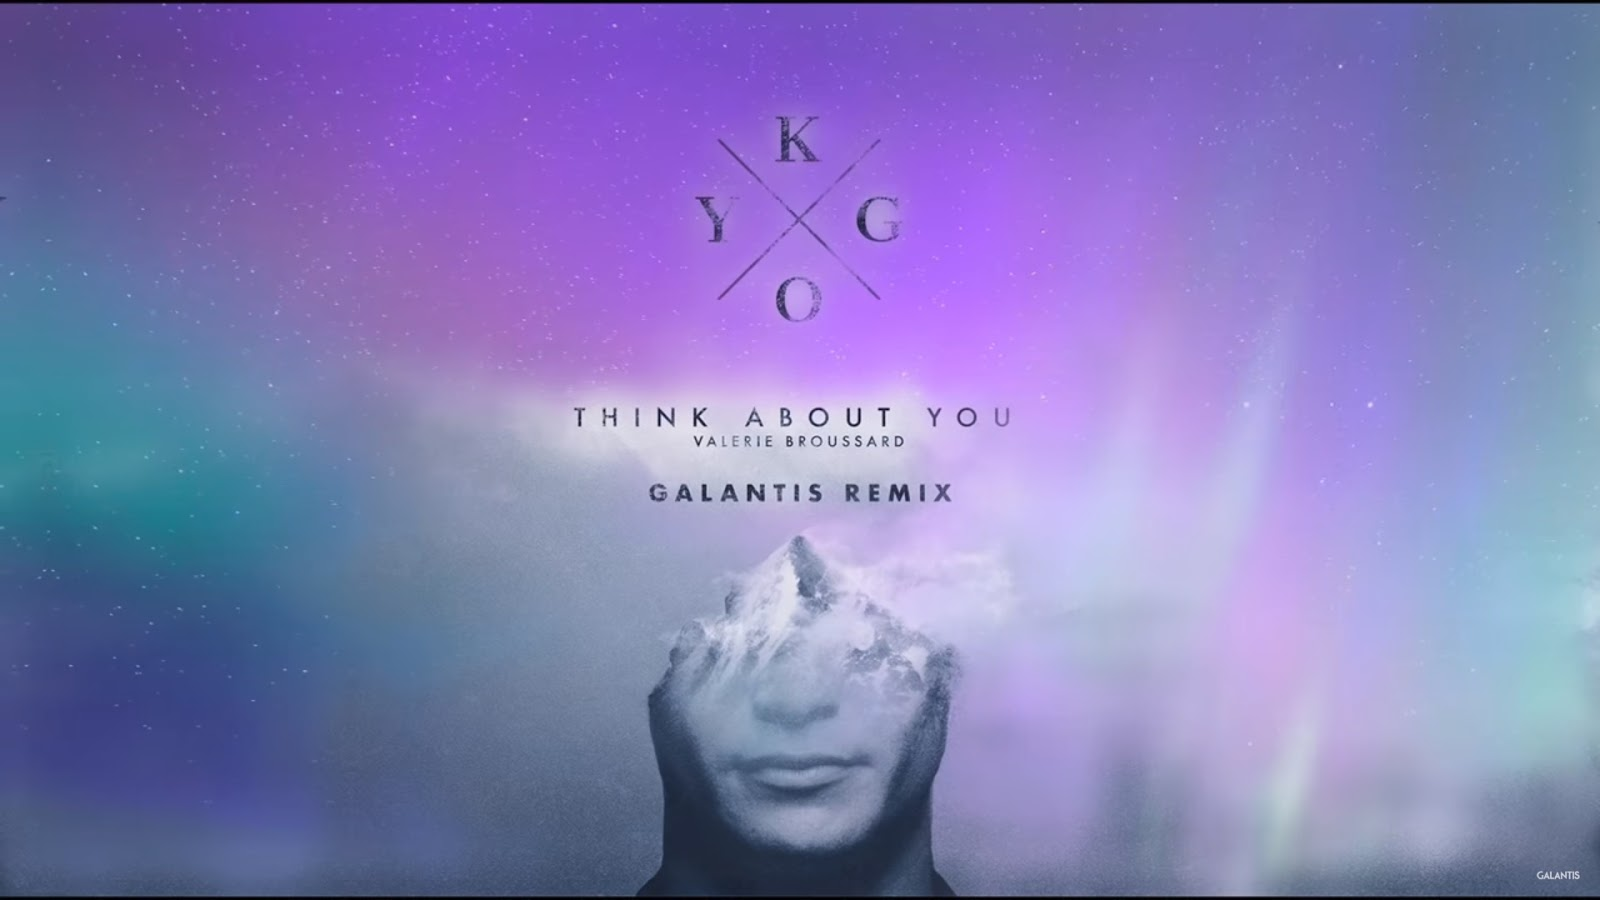 Kygo - Think About You ft  Valerie Broussard (Galantis